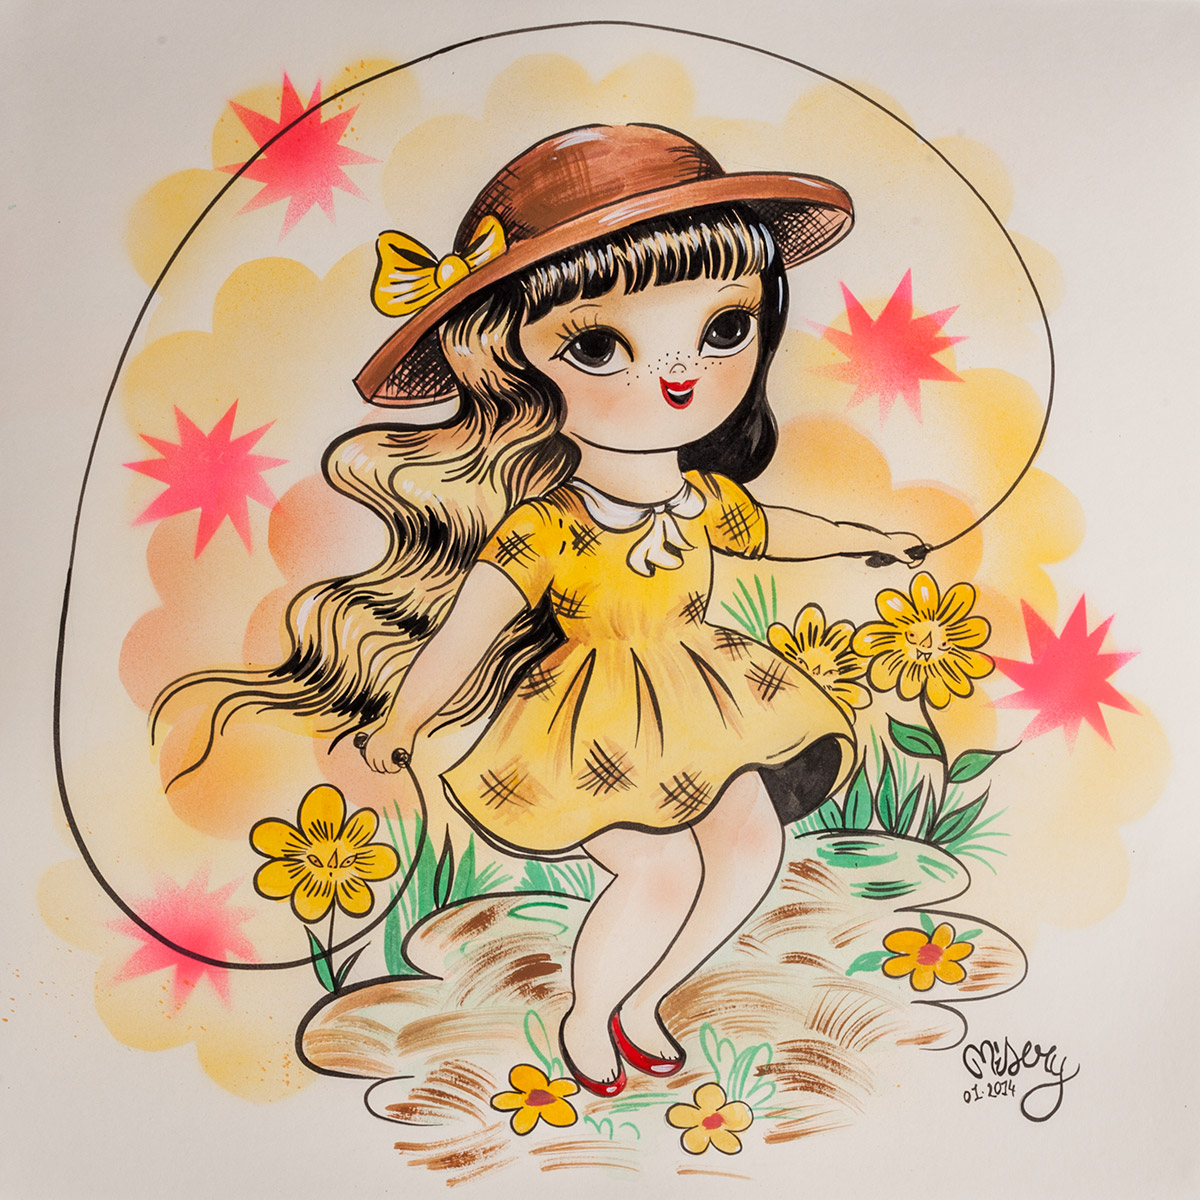 Misery-Sophie.jpg